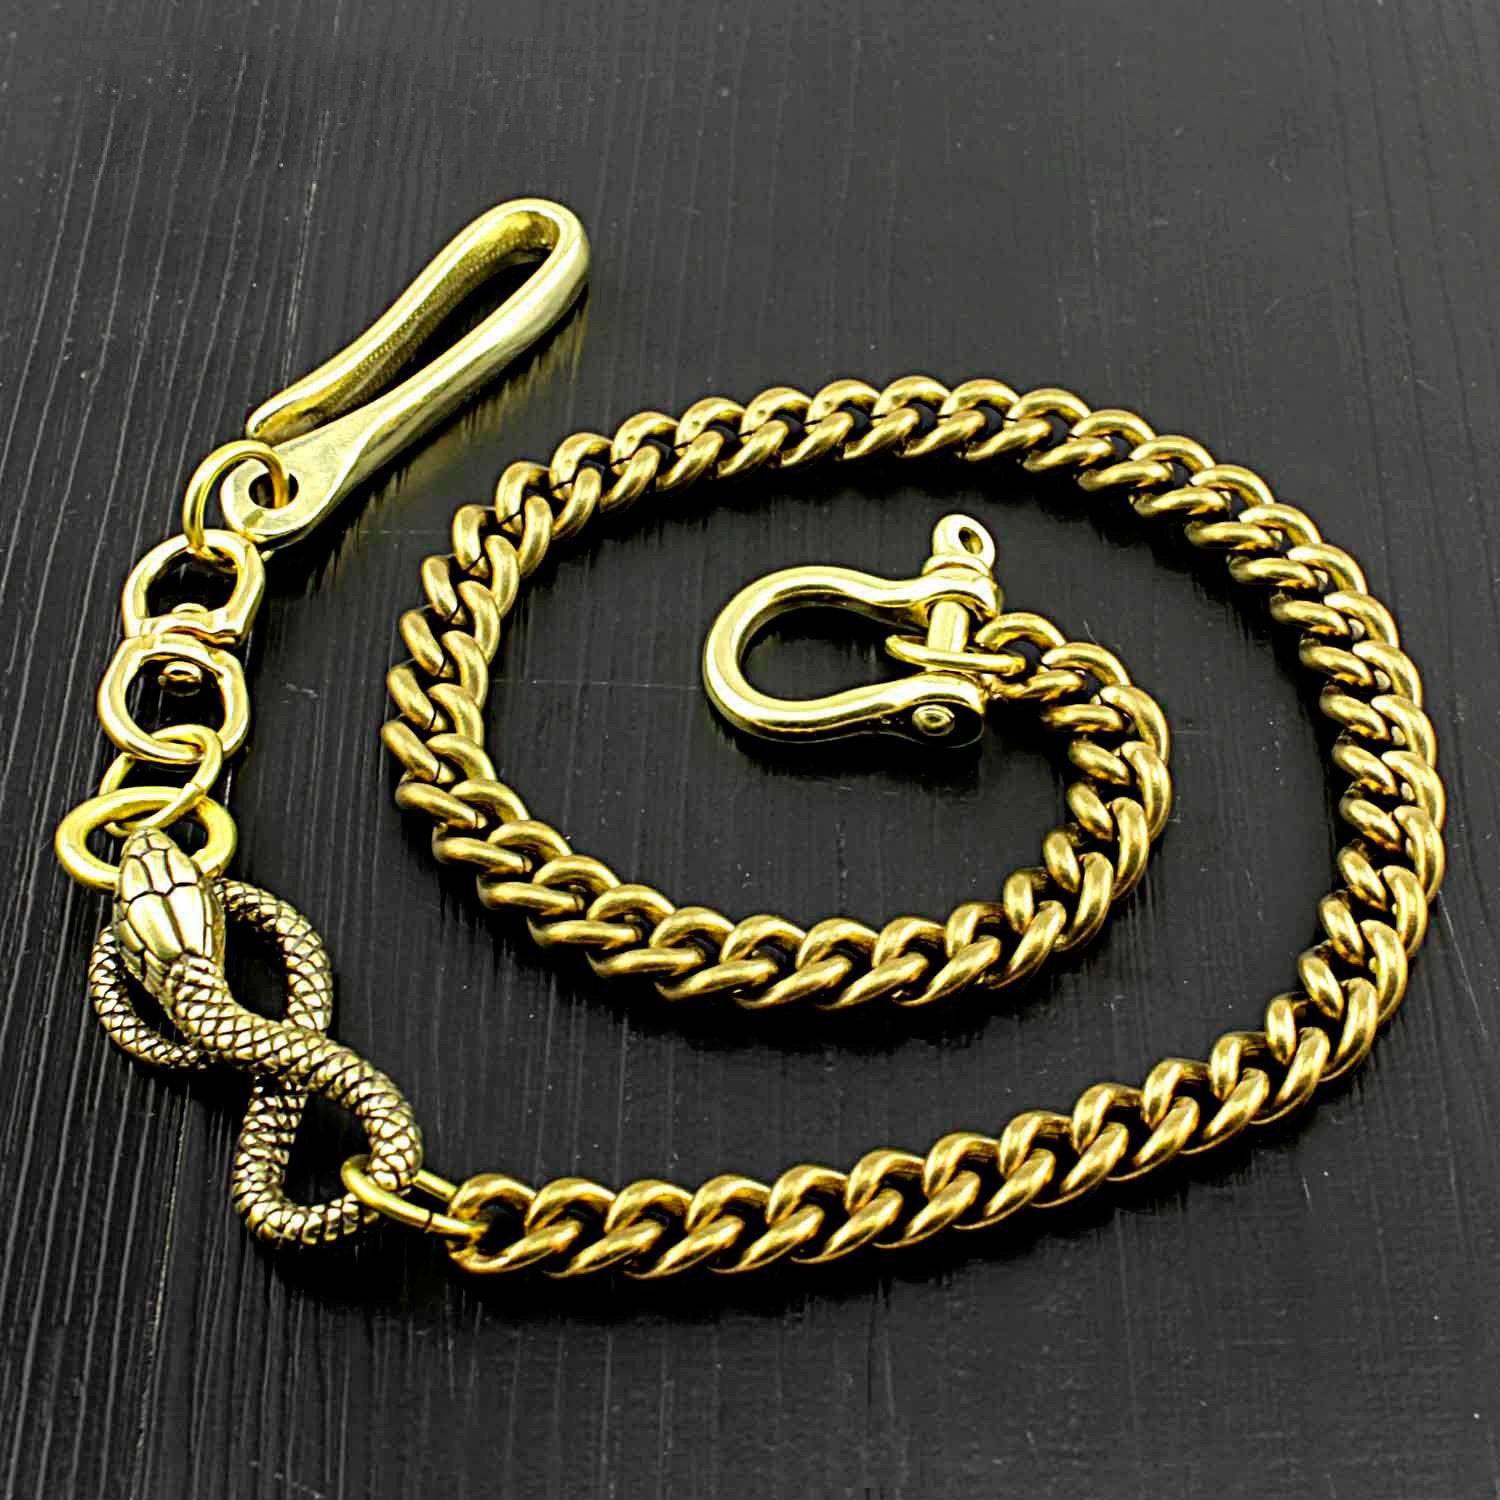 Cool Gold Long Snake Pants Chain Wallet Chain Long Biker Wallet Chain For Men